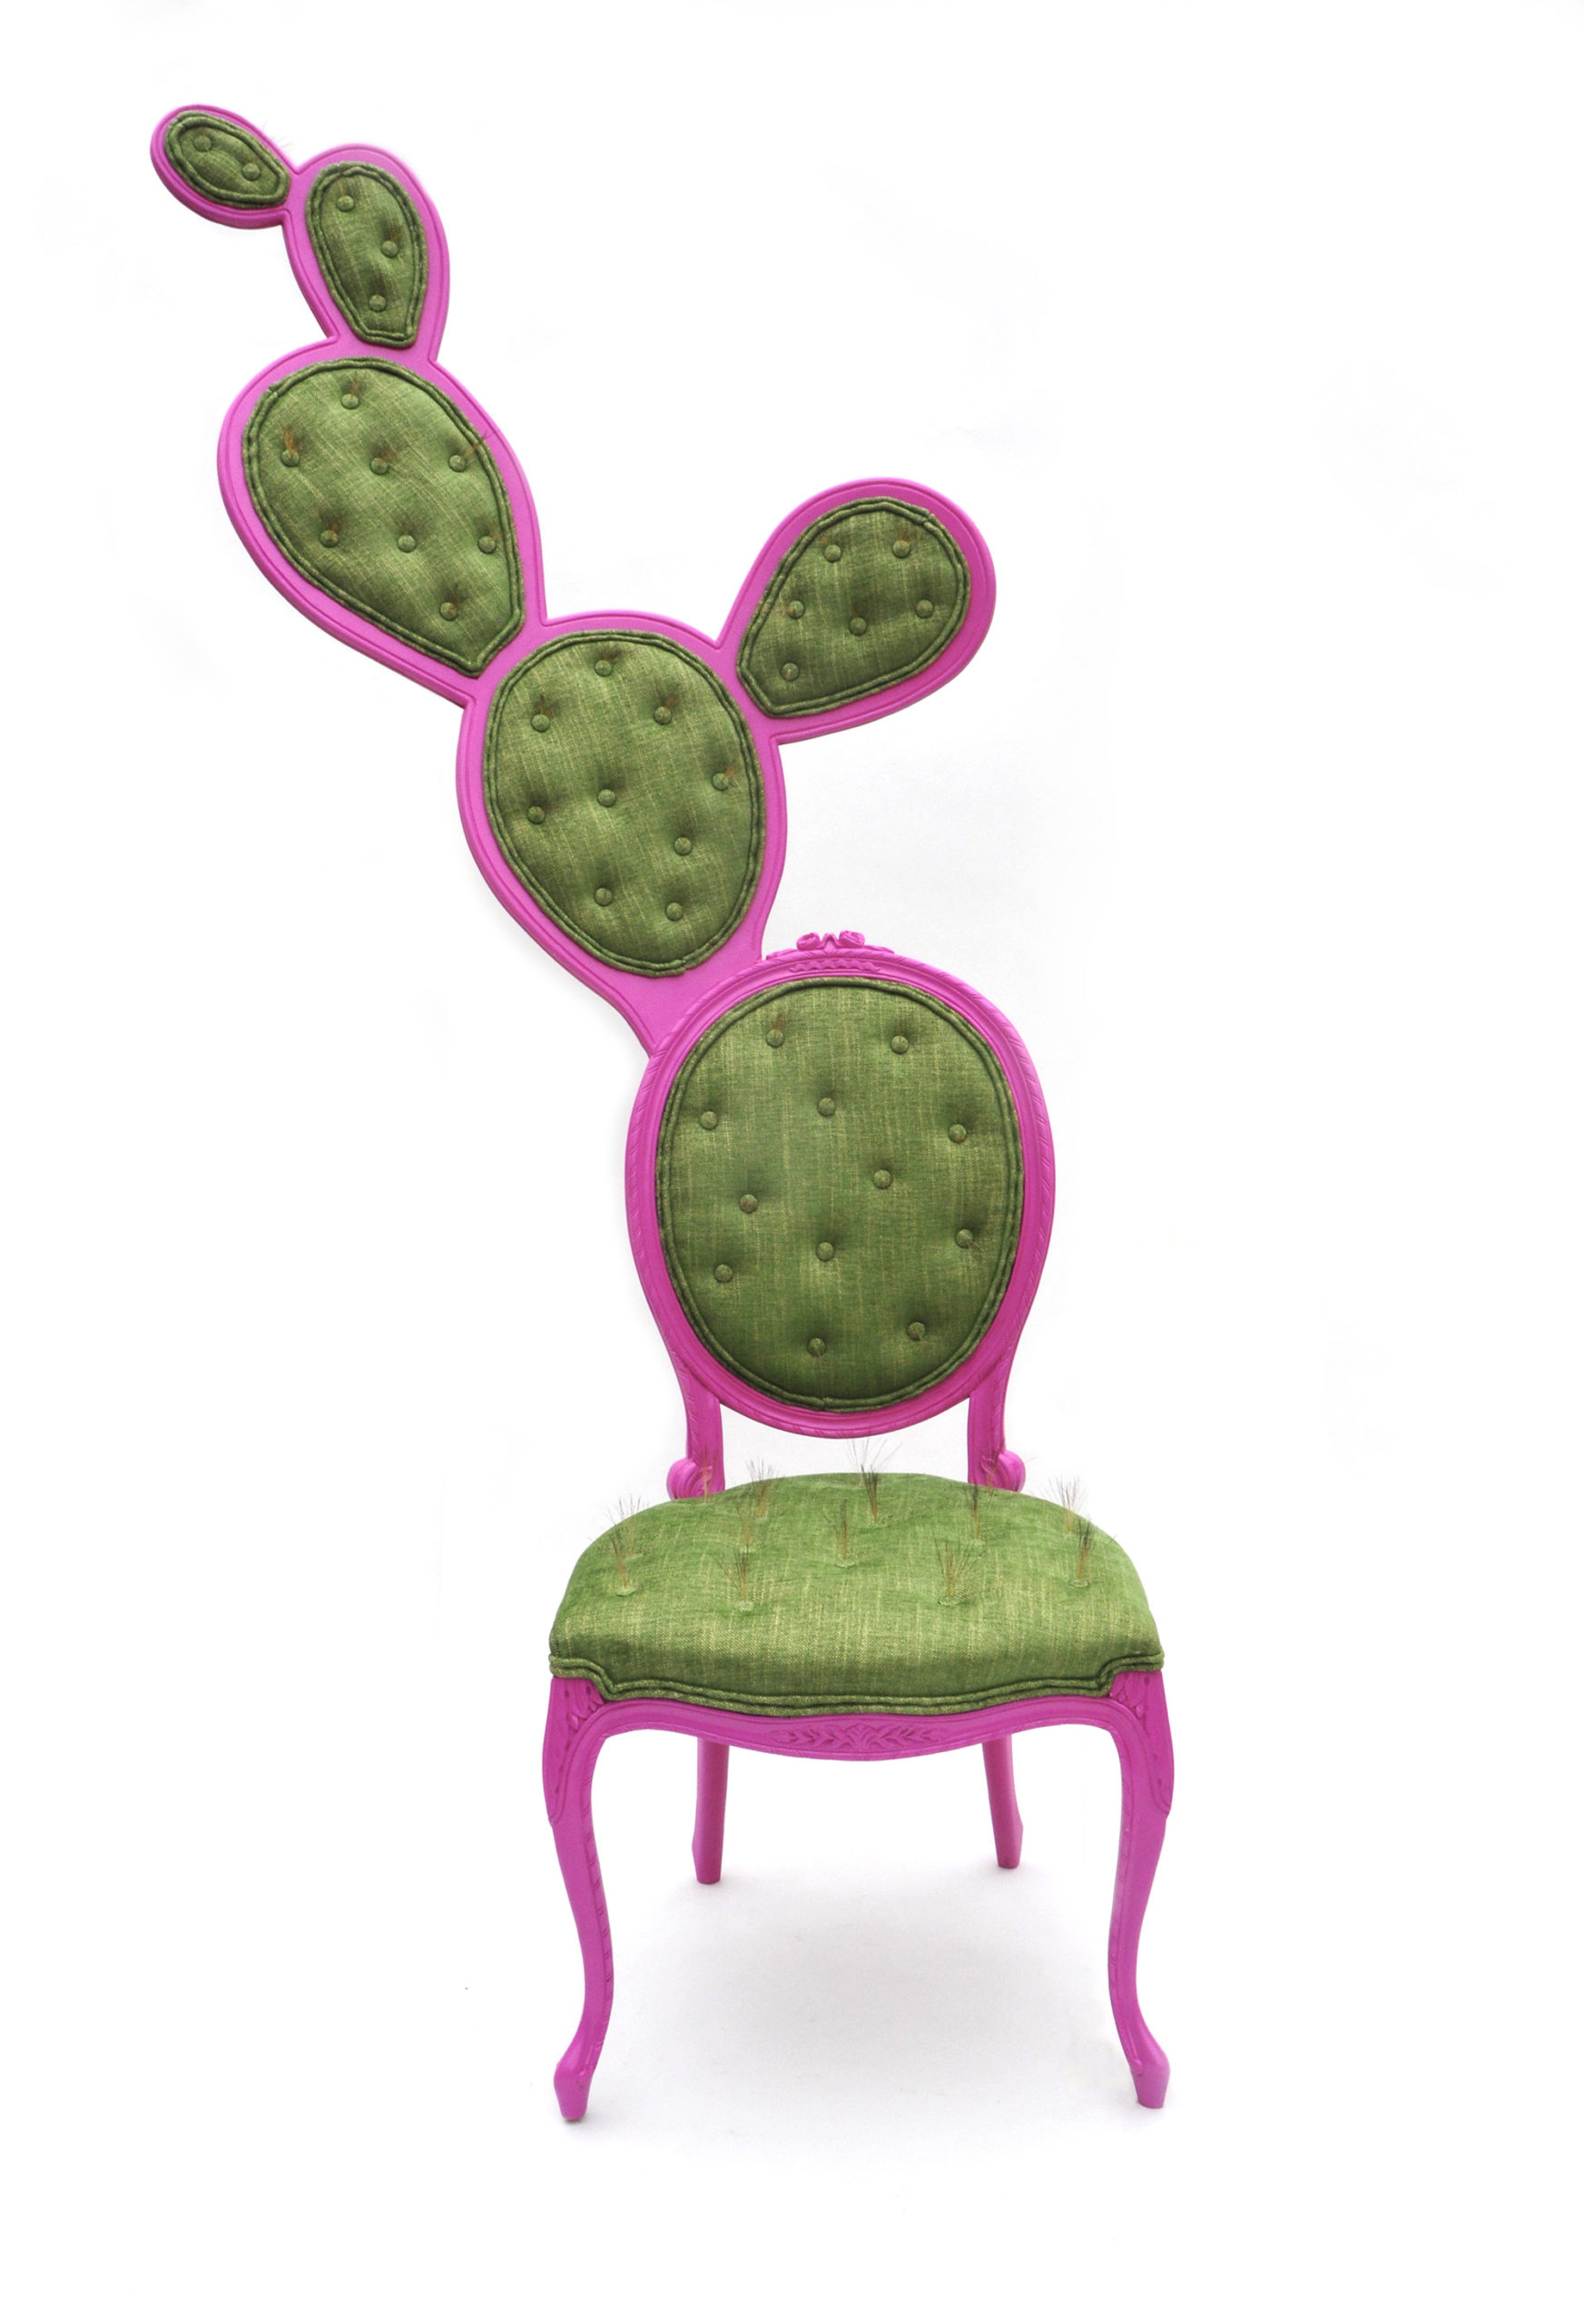 Fibrous Spikes Poke From a Humorous Pair of Cacti Chairs by Valentina Gonzalez Wohlers